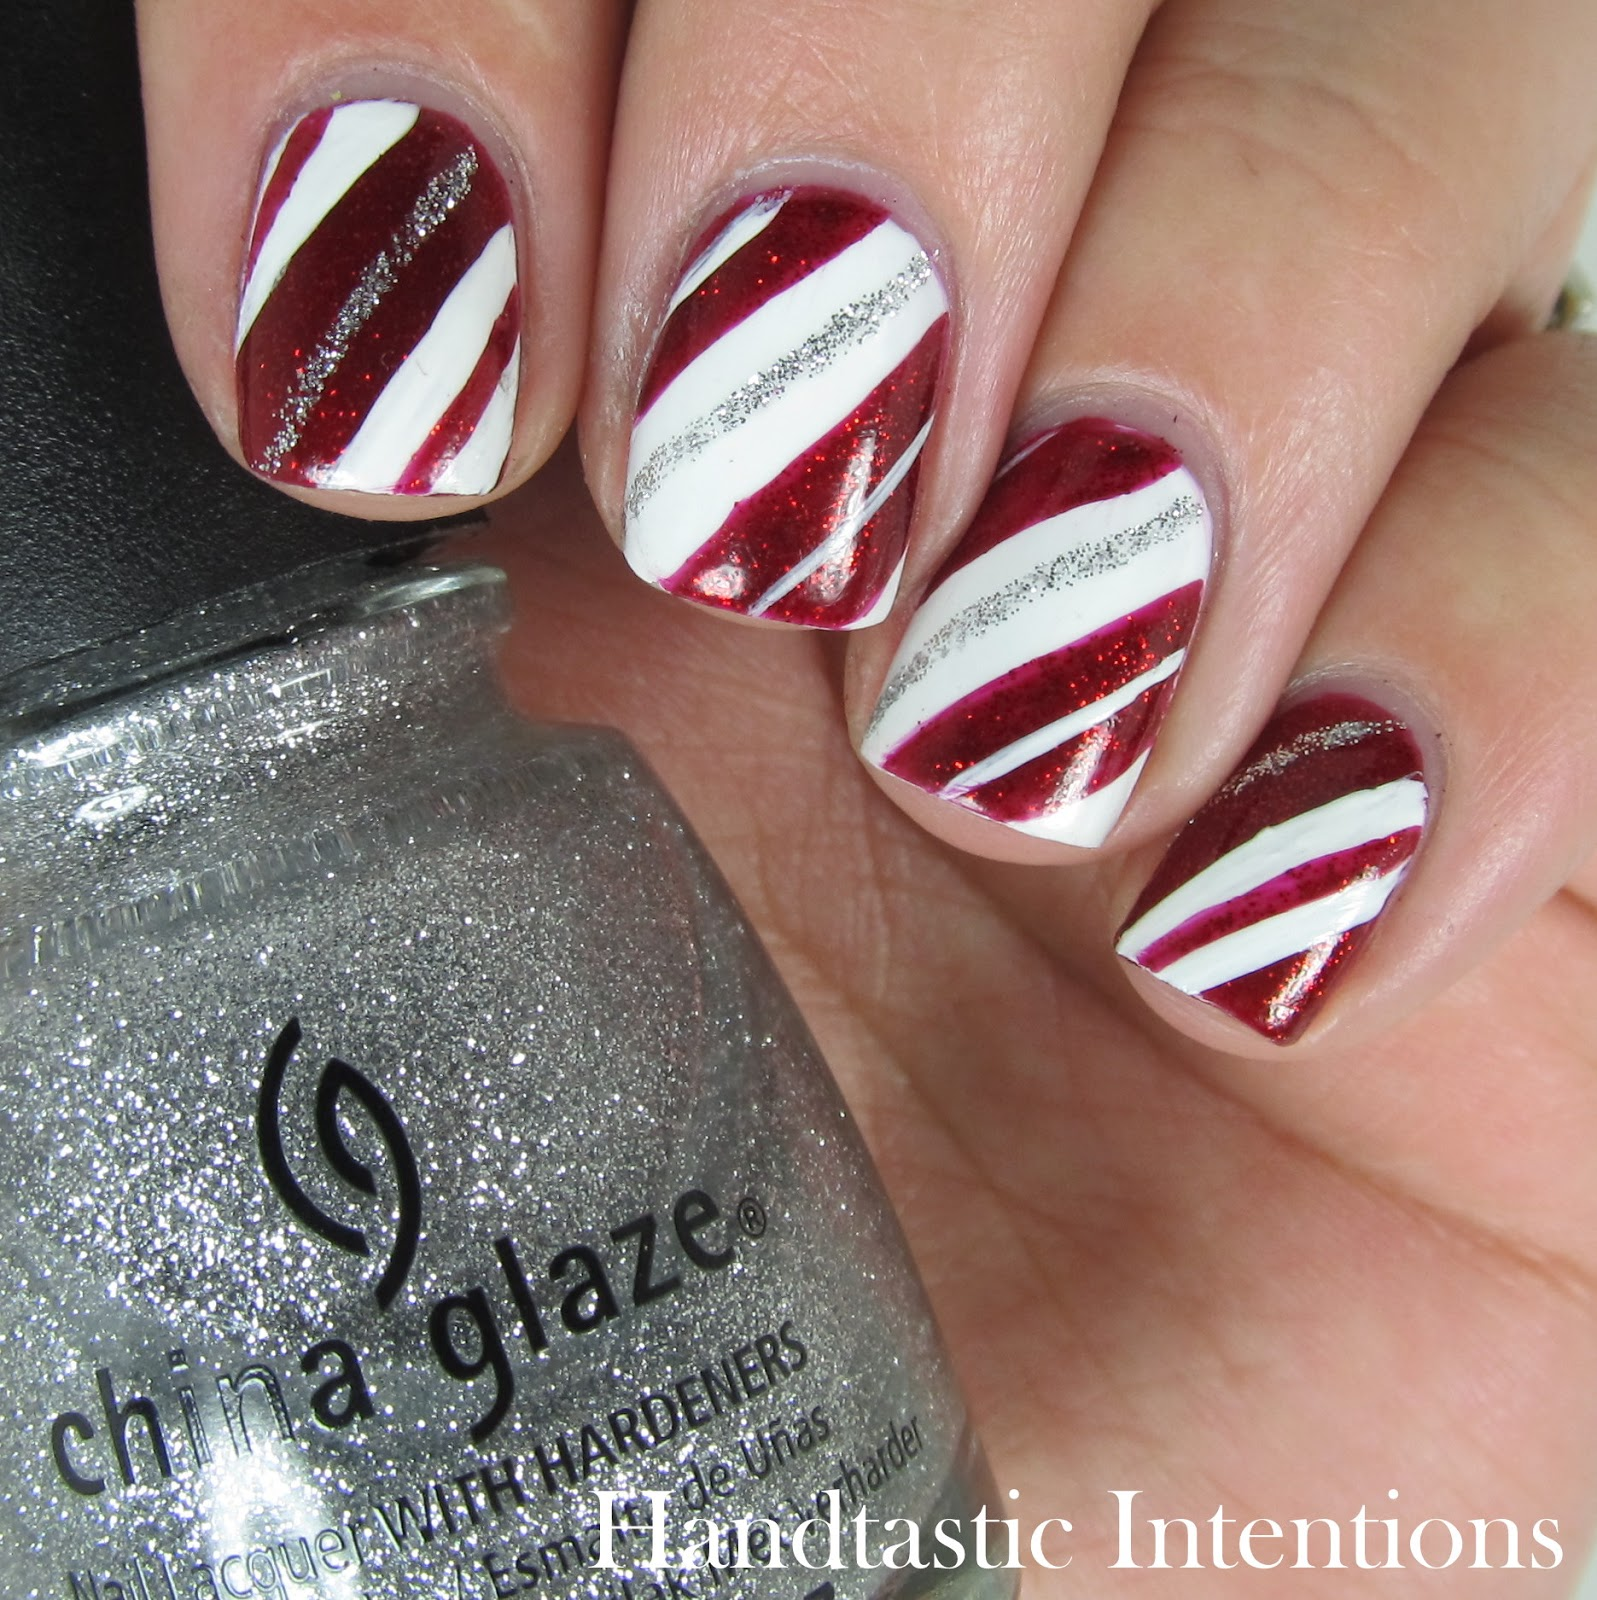 Candy cane nail designs graham reid diy christmas nail art xmas candy cane nails bows view images prinsesfo Choice Image